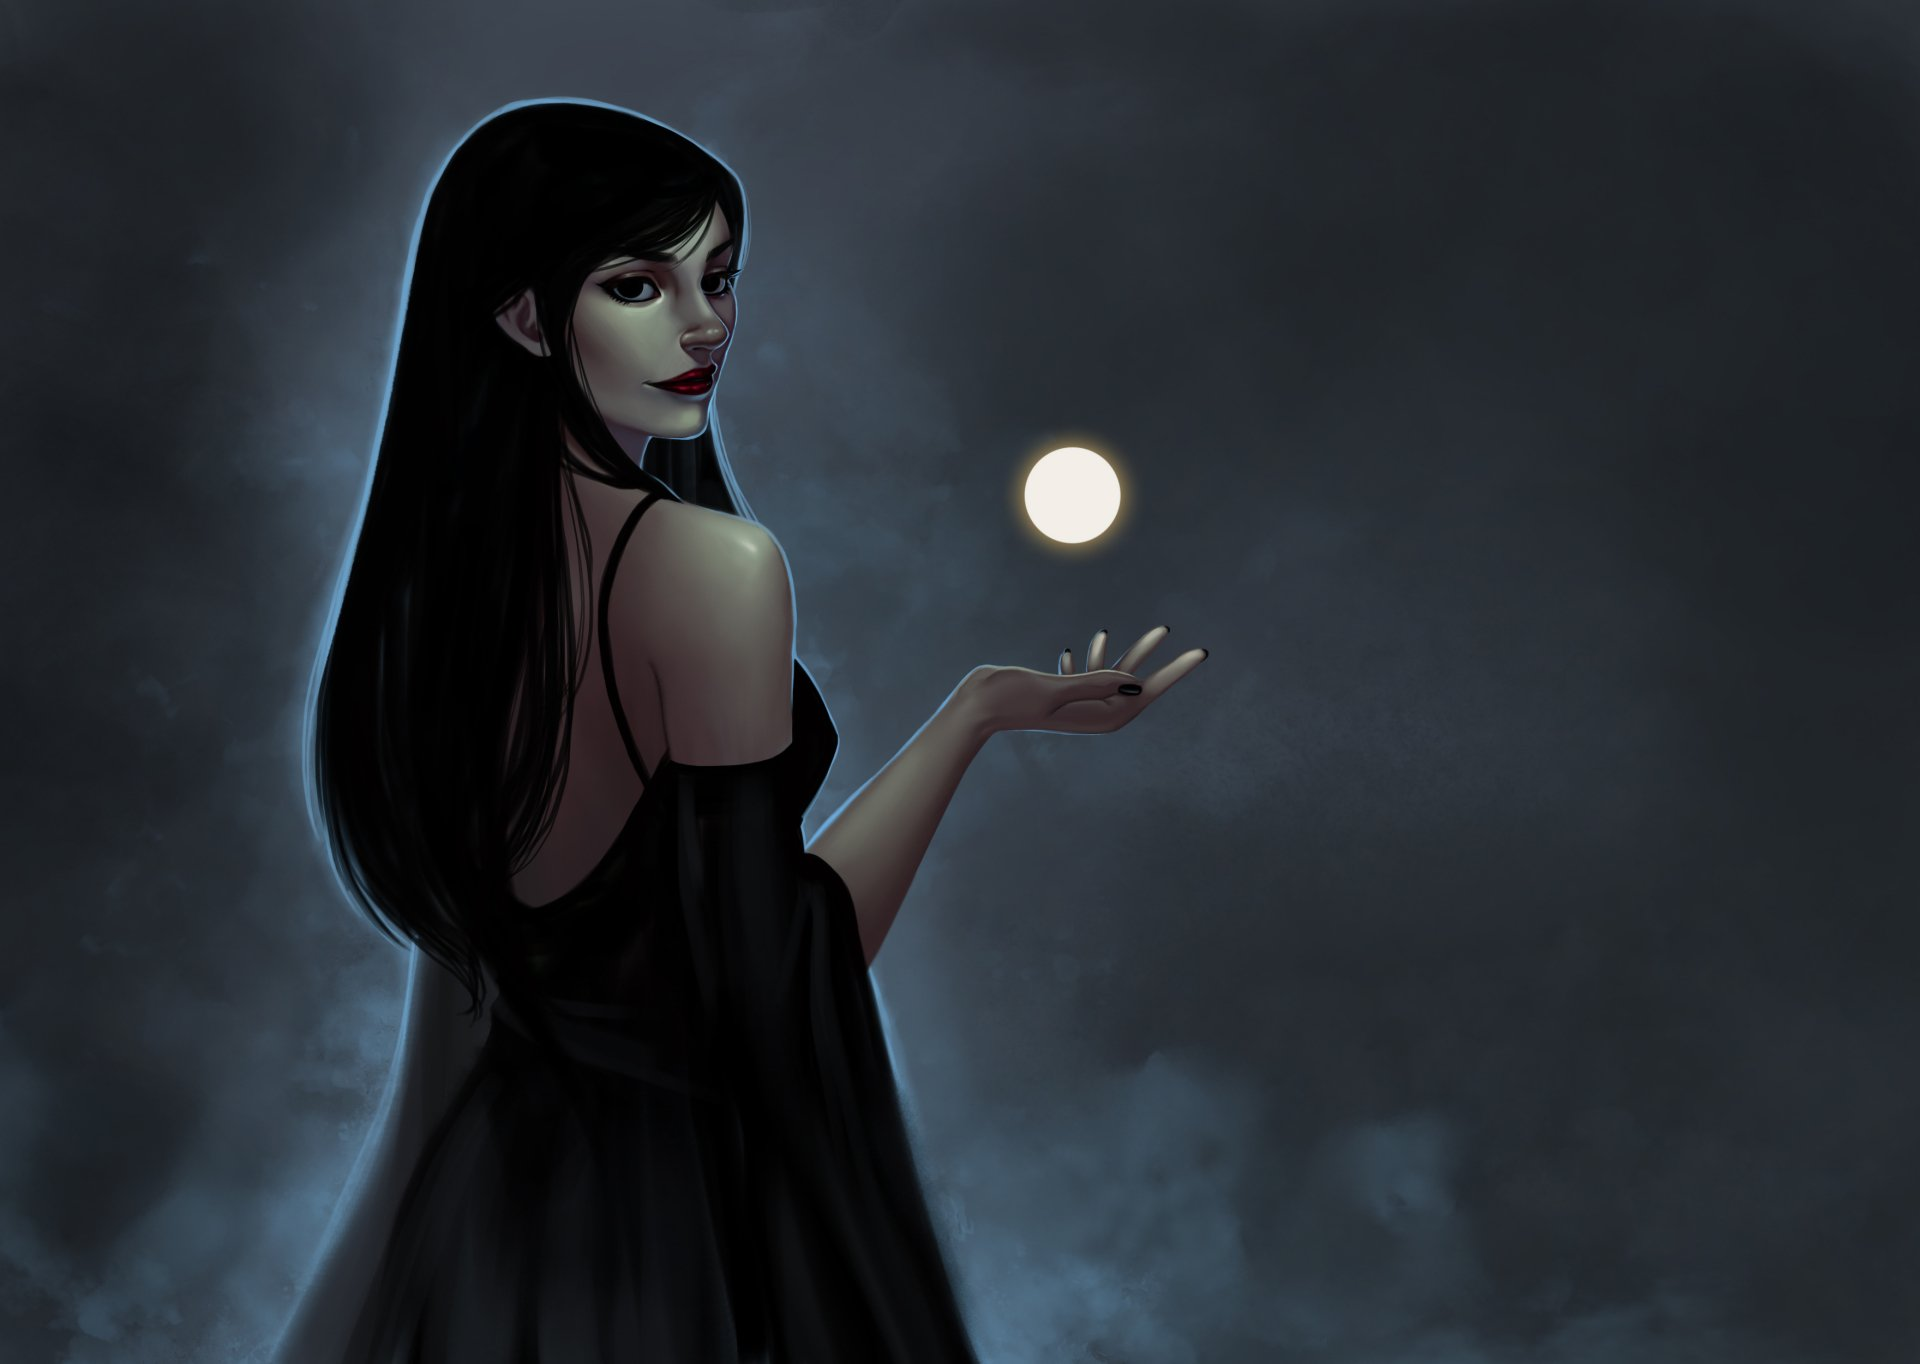 Artistic - Painting  Lipstick Moon Black Hair Girl Woman Artistic Wallpaper